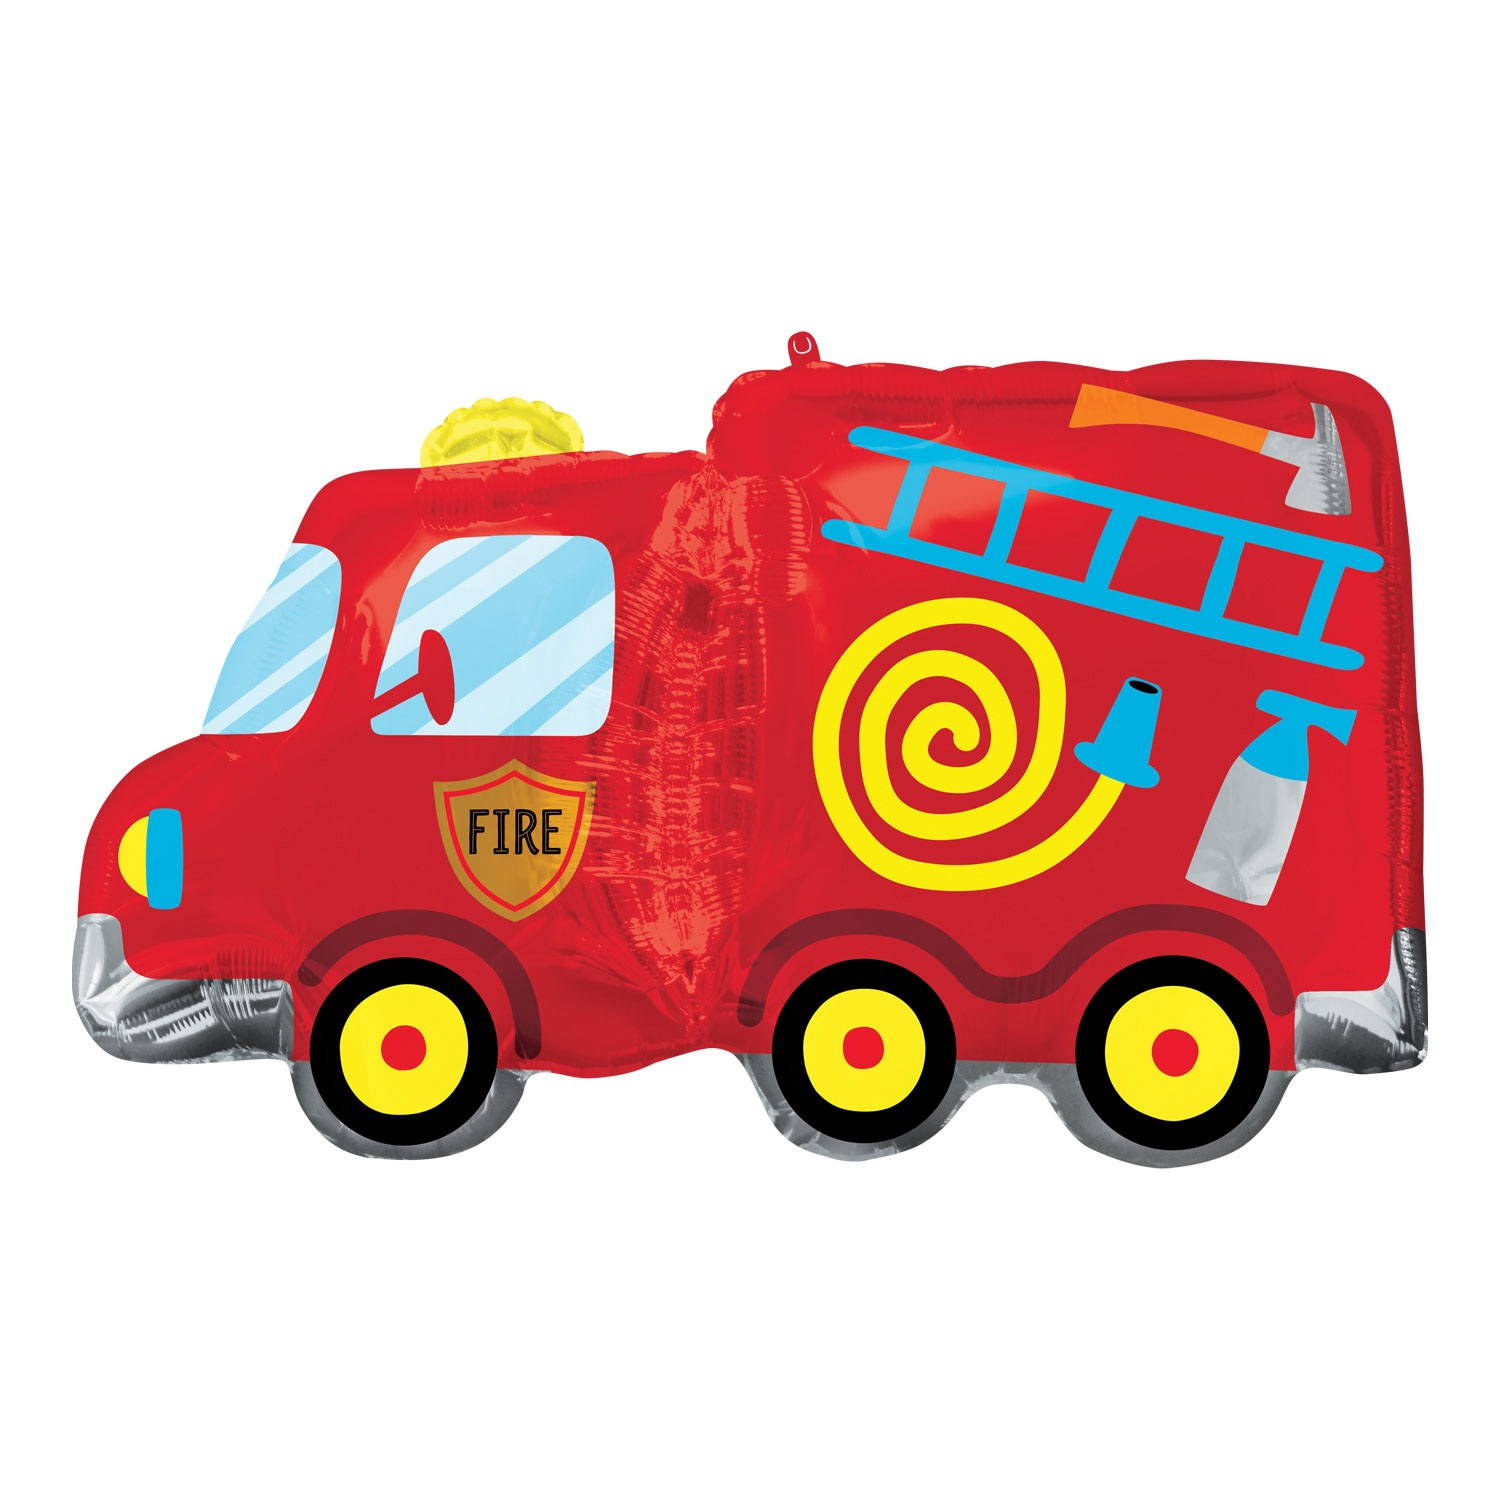 FIRE TRUCK SUPERSHAPE FOIL BALLOON 30 INCHES